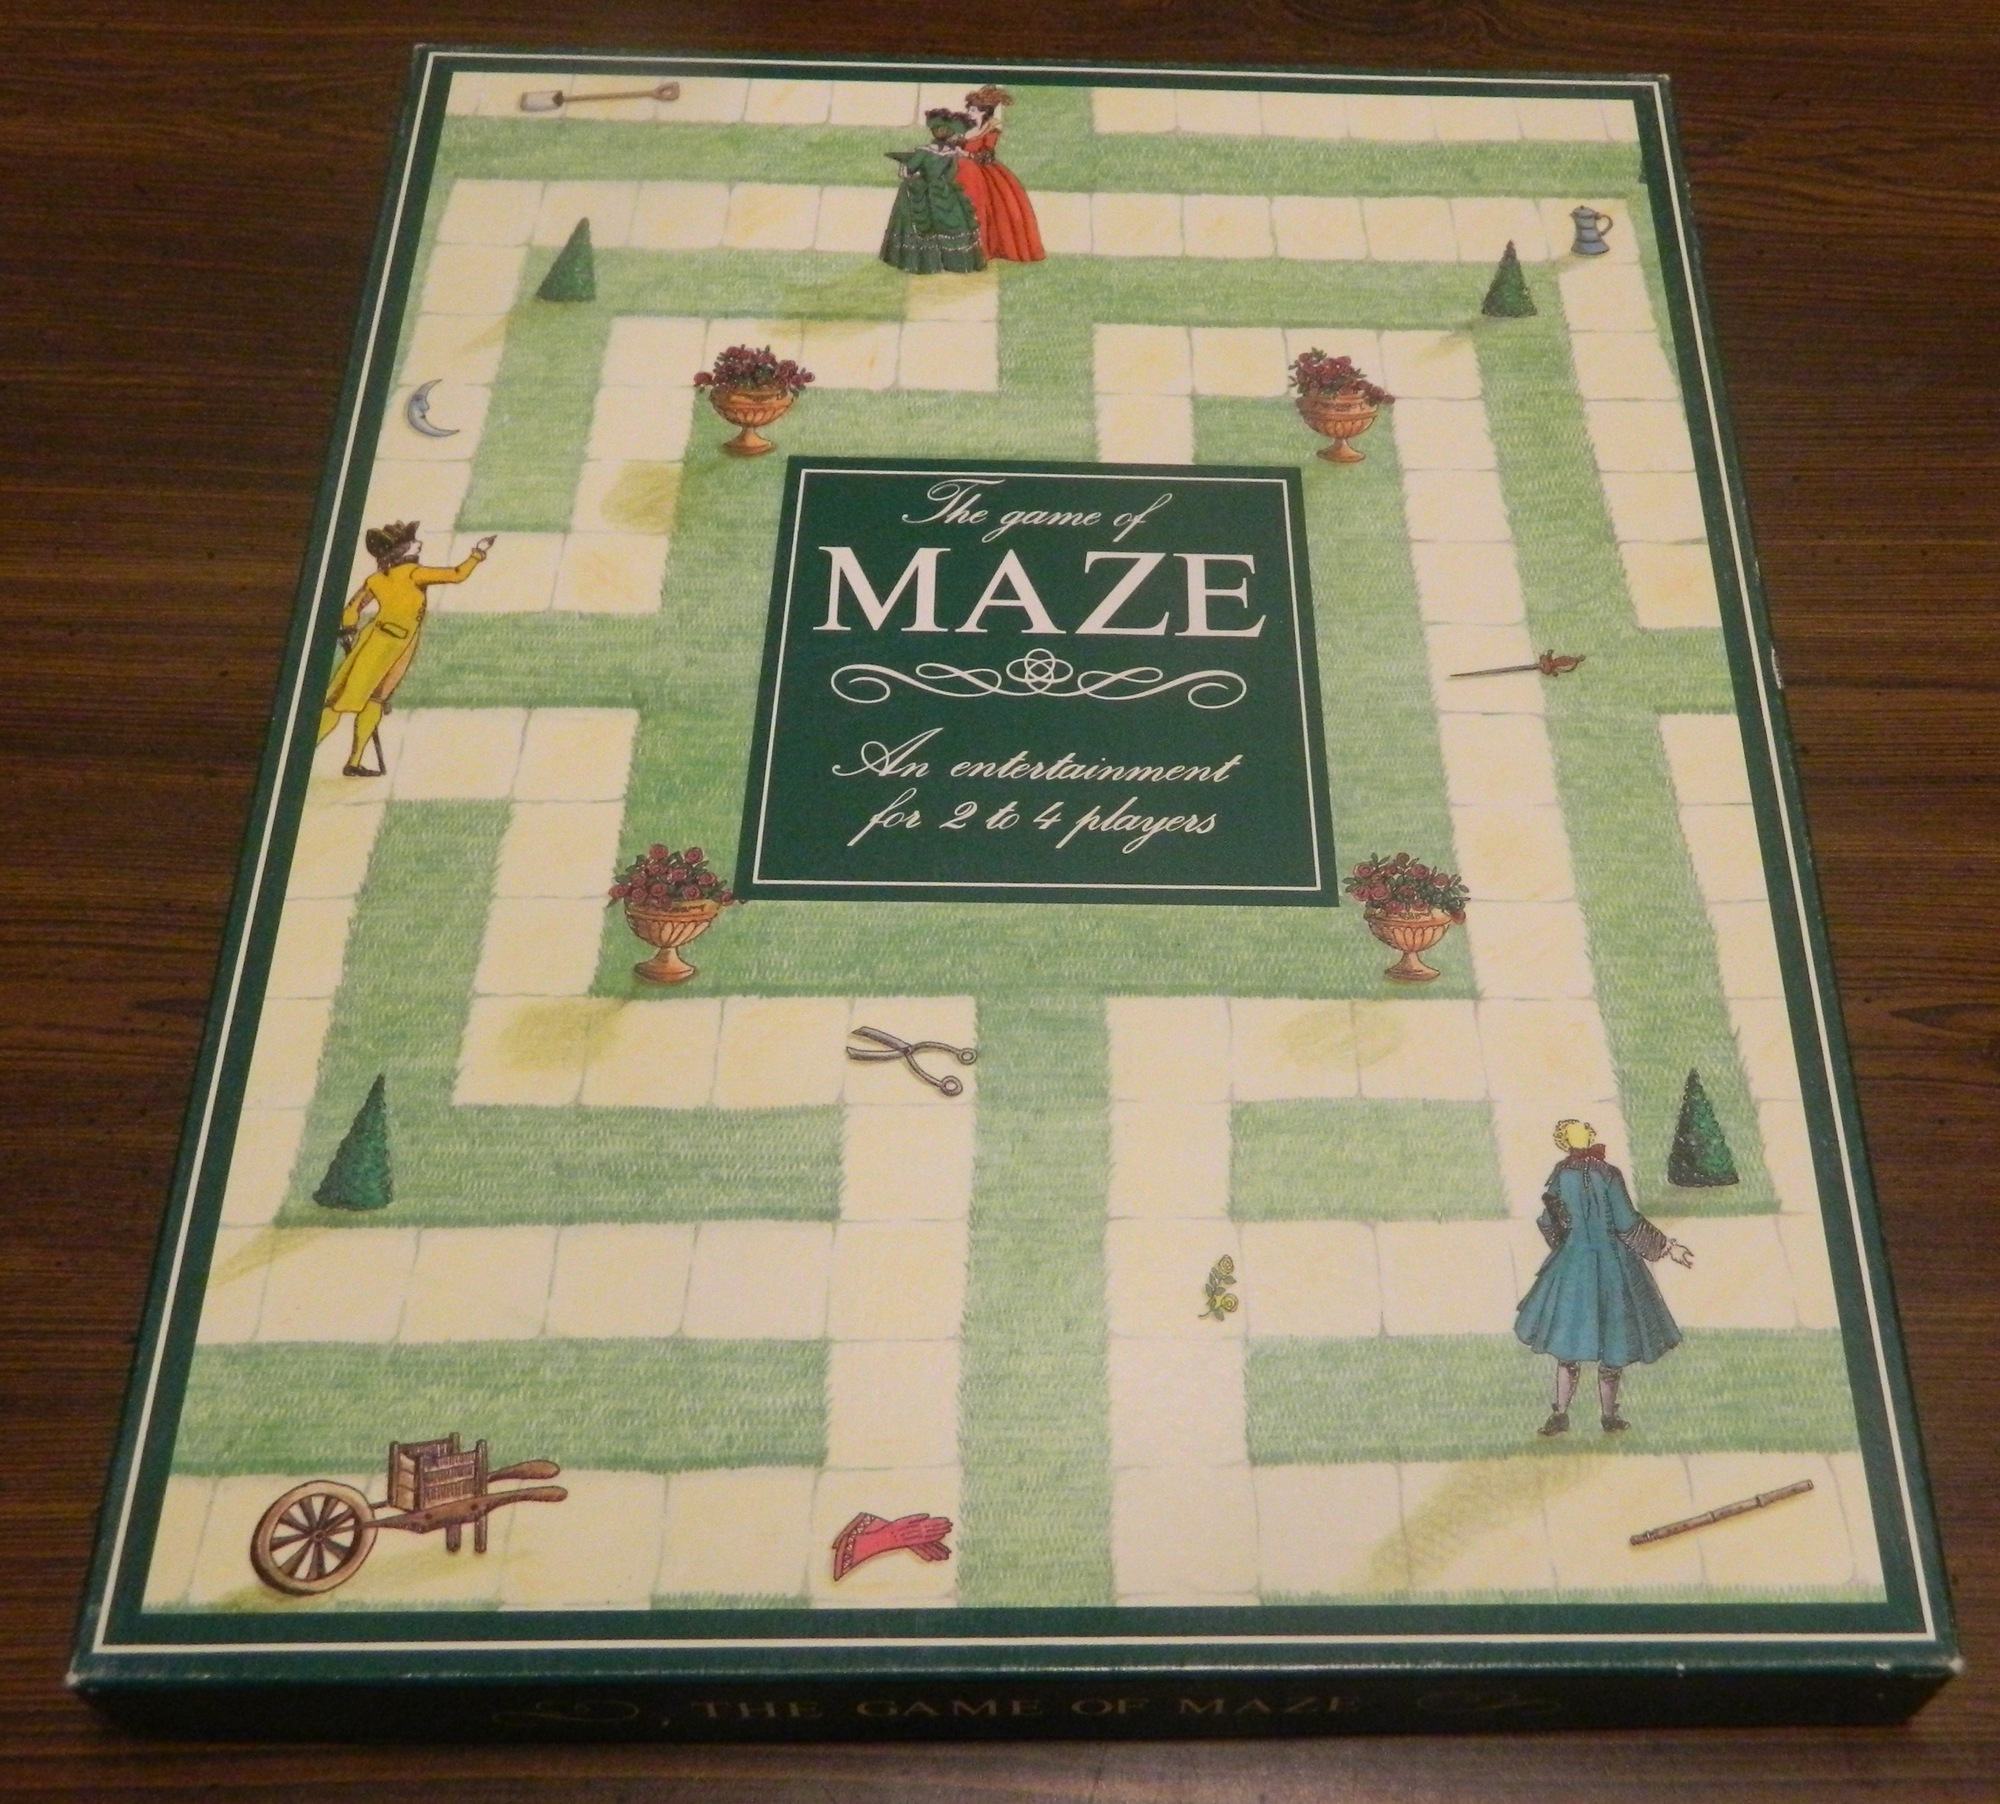 Box for The Game of maze